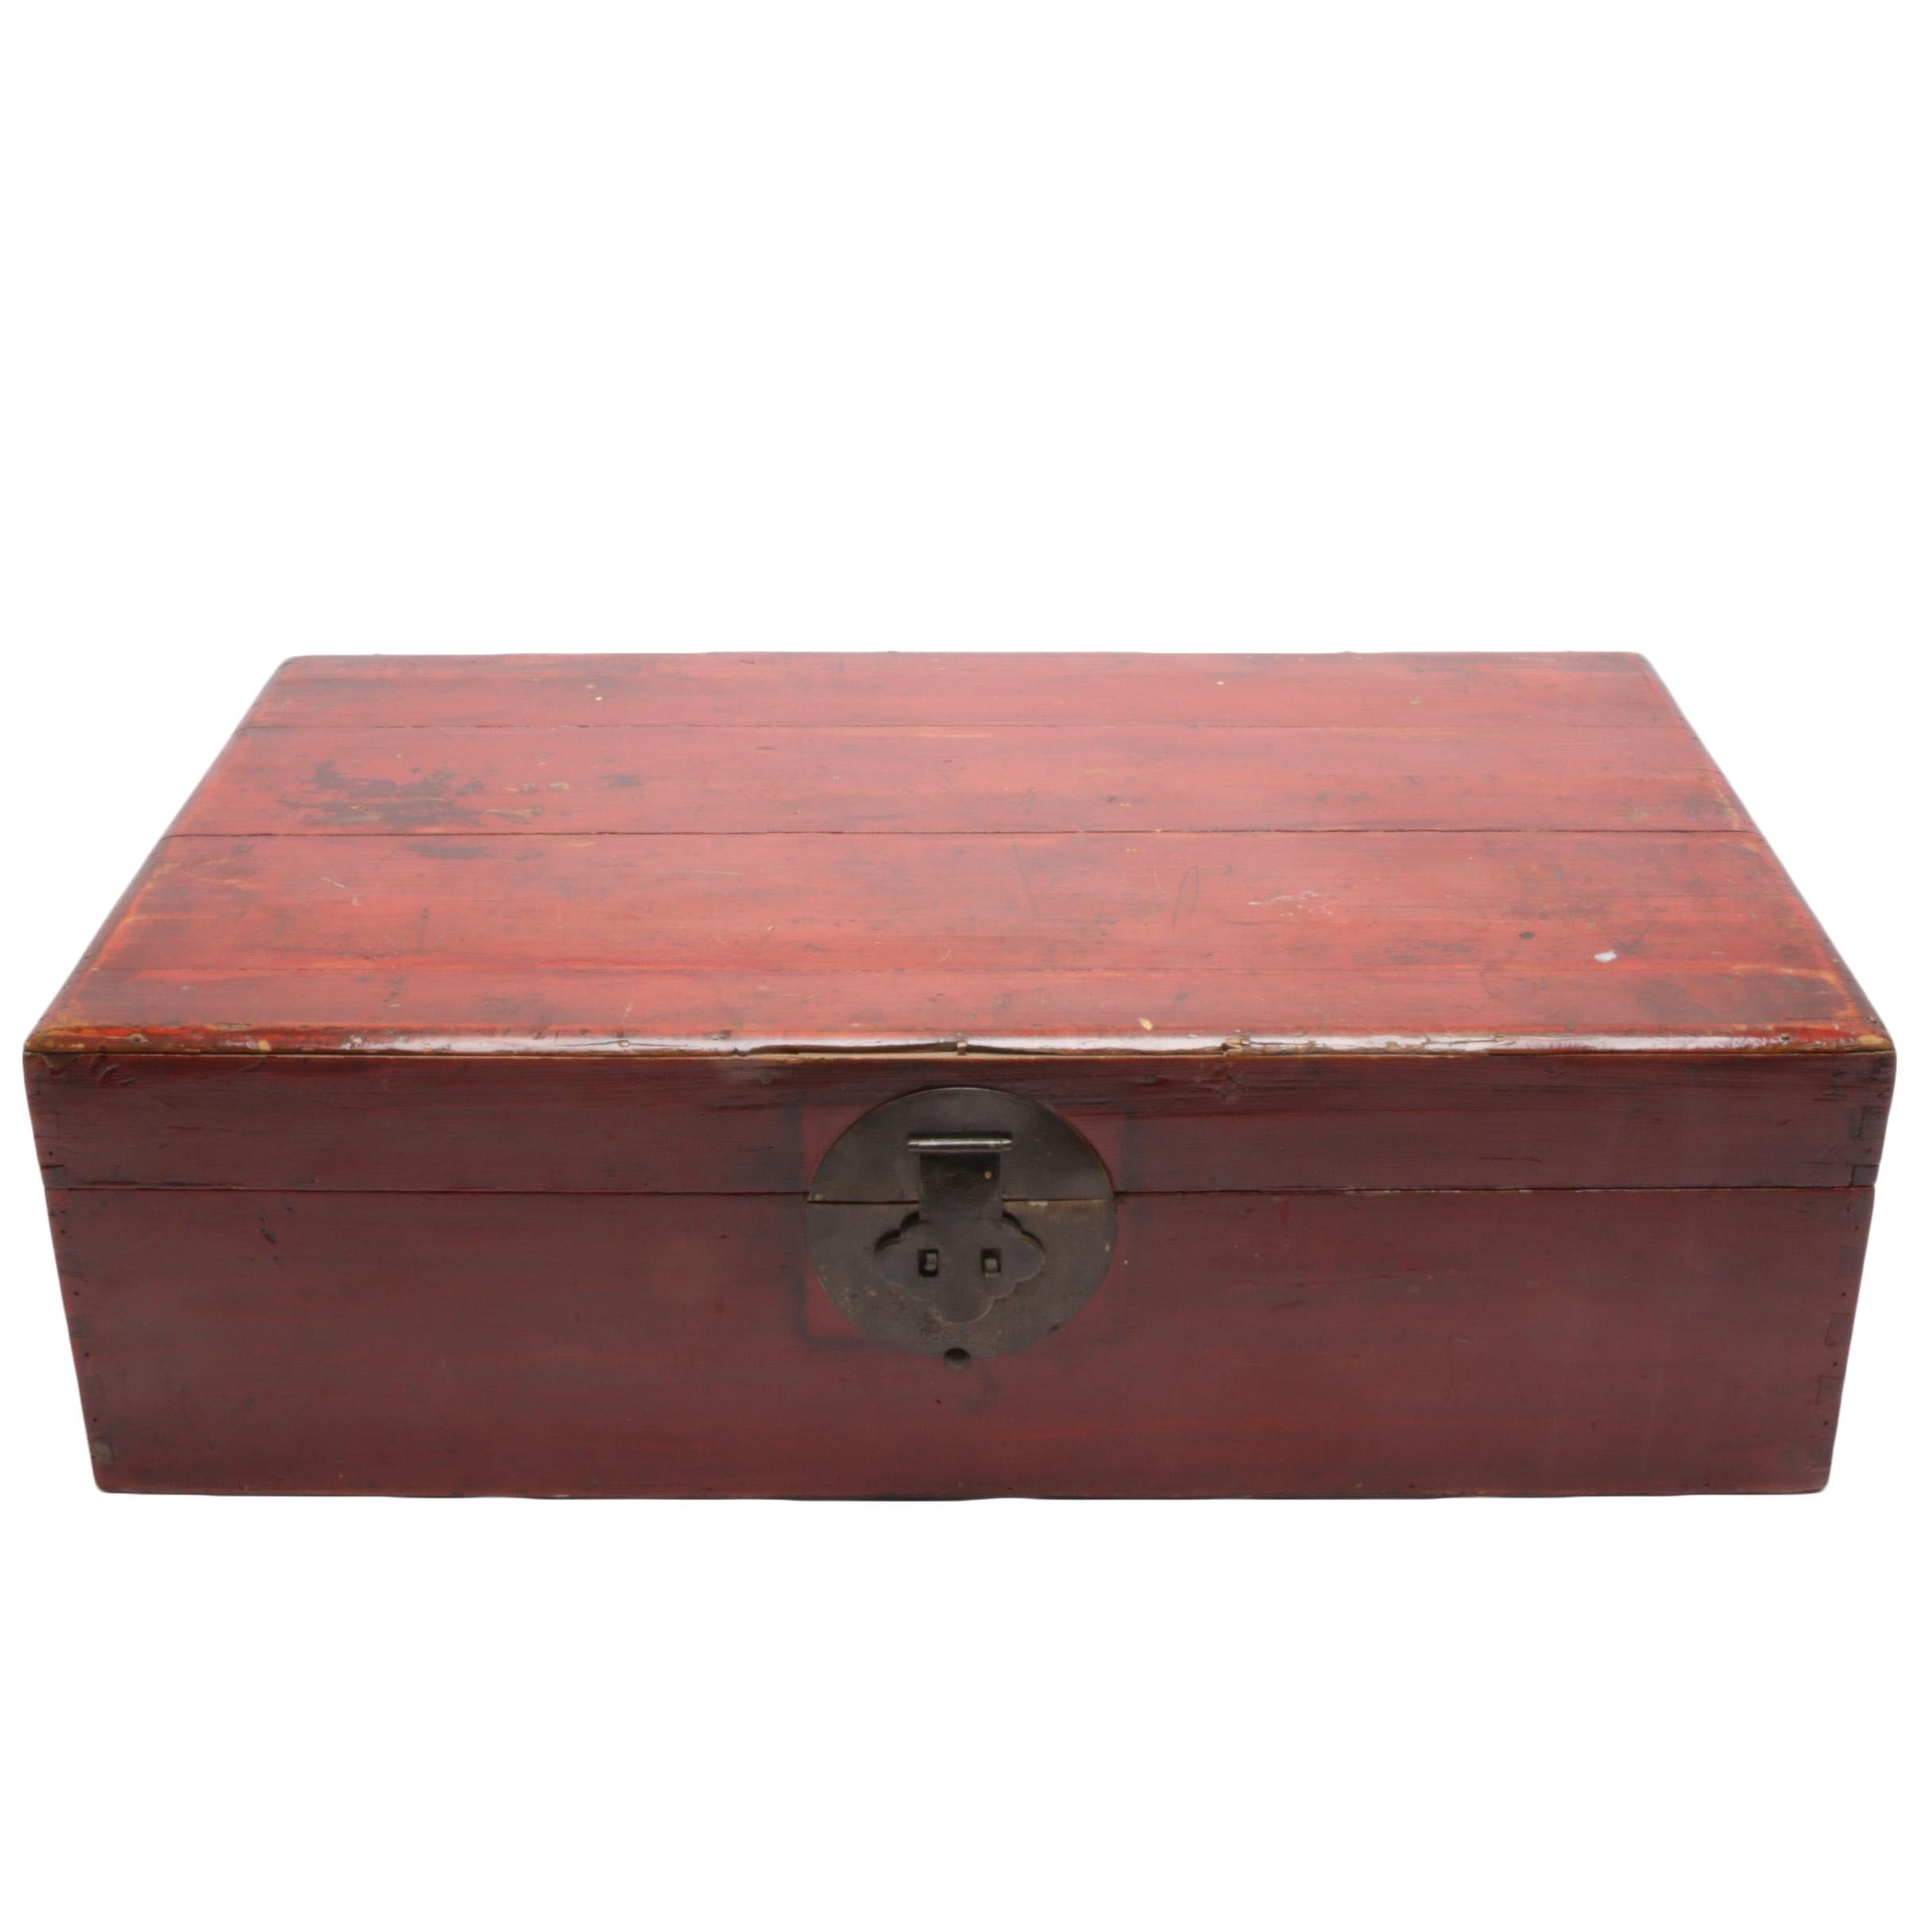 Antique Chinese Luggage Case in Red Stain Finish